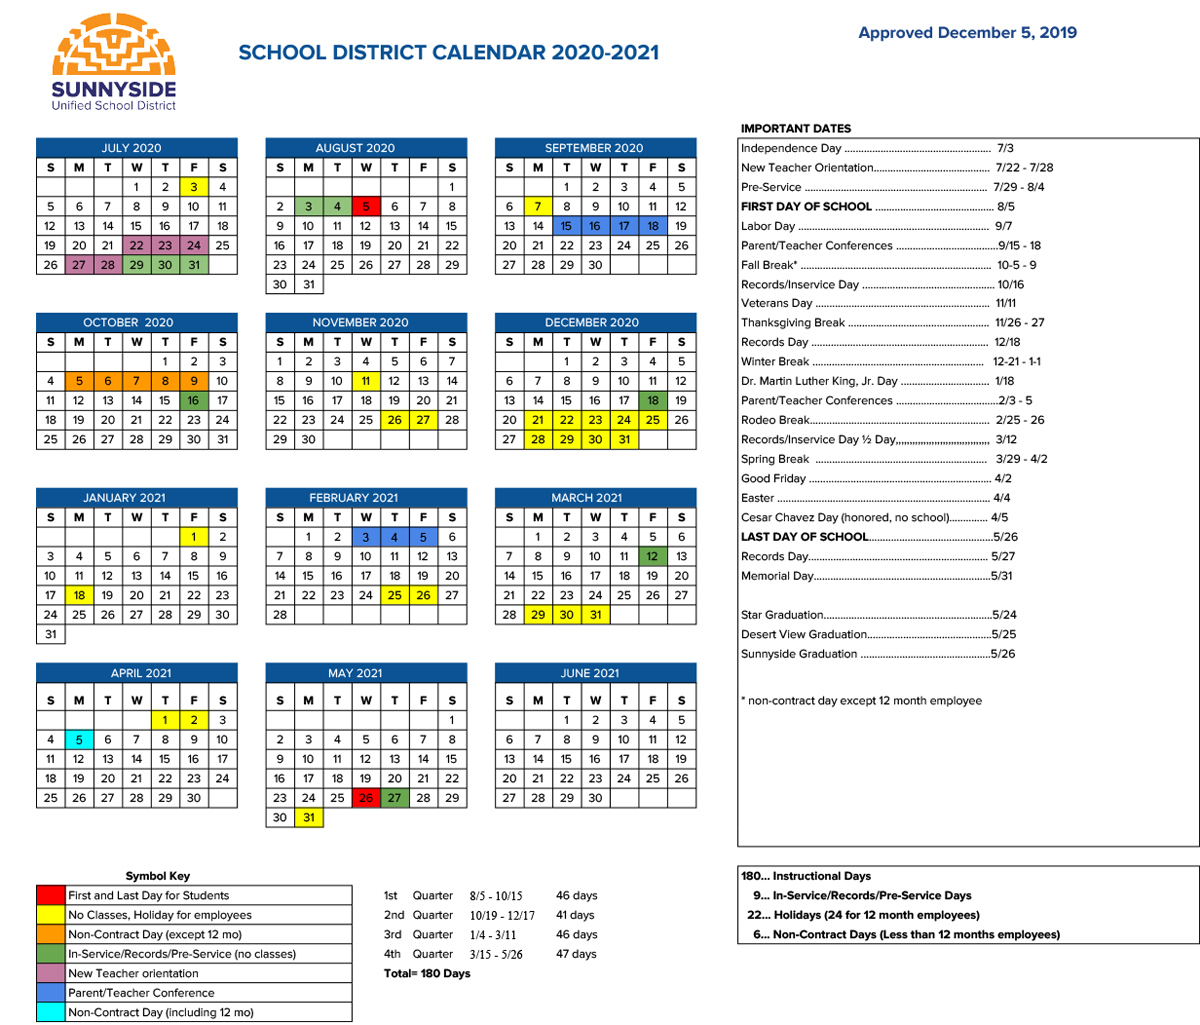 Academic Calendar | Sunnyside Unified School District pertaining to Berkeley Academic Calendar 2020